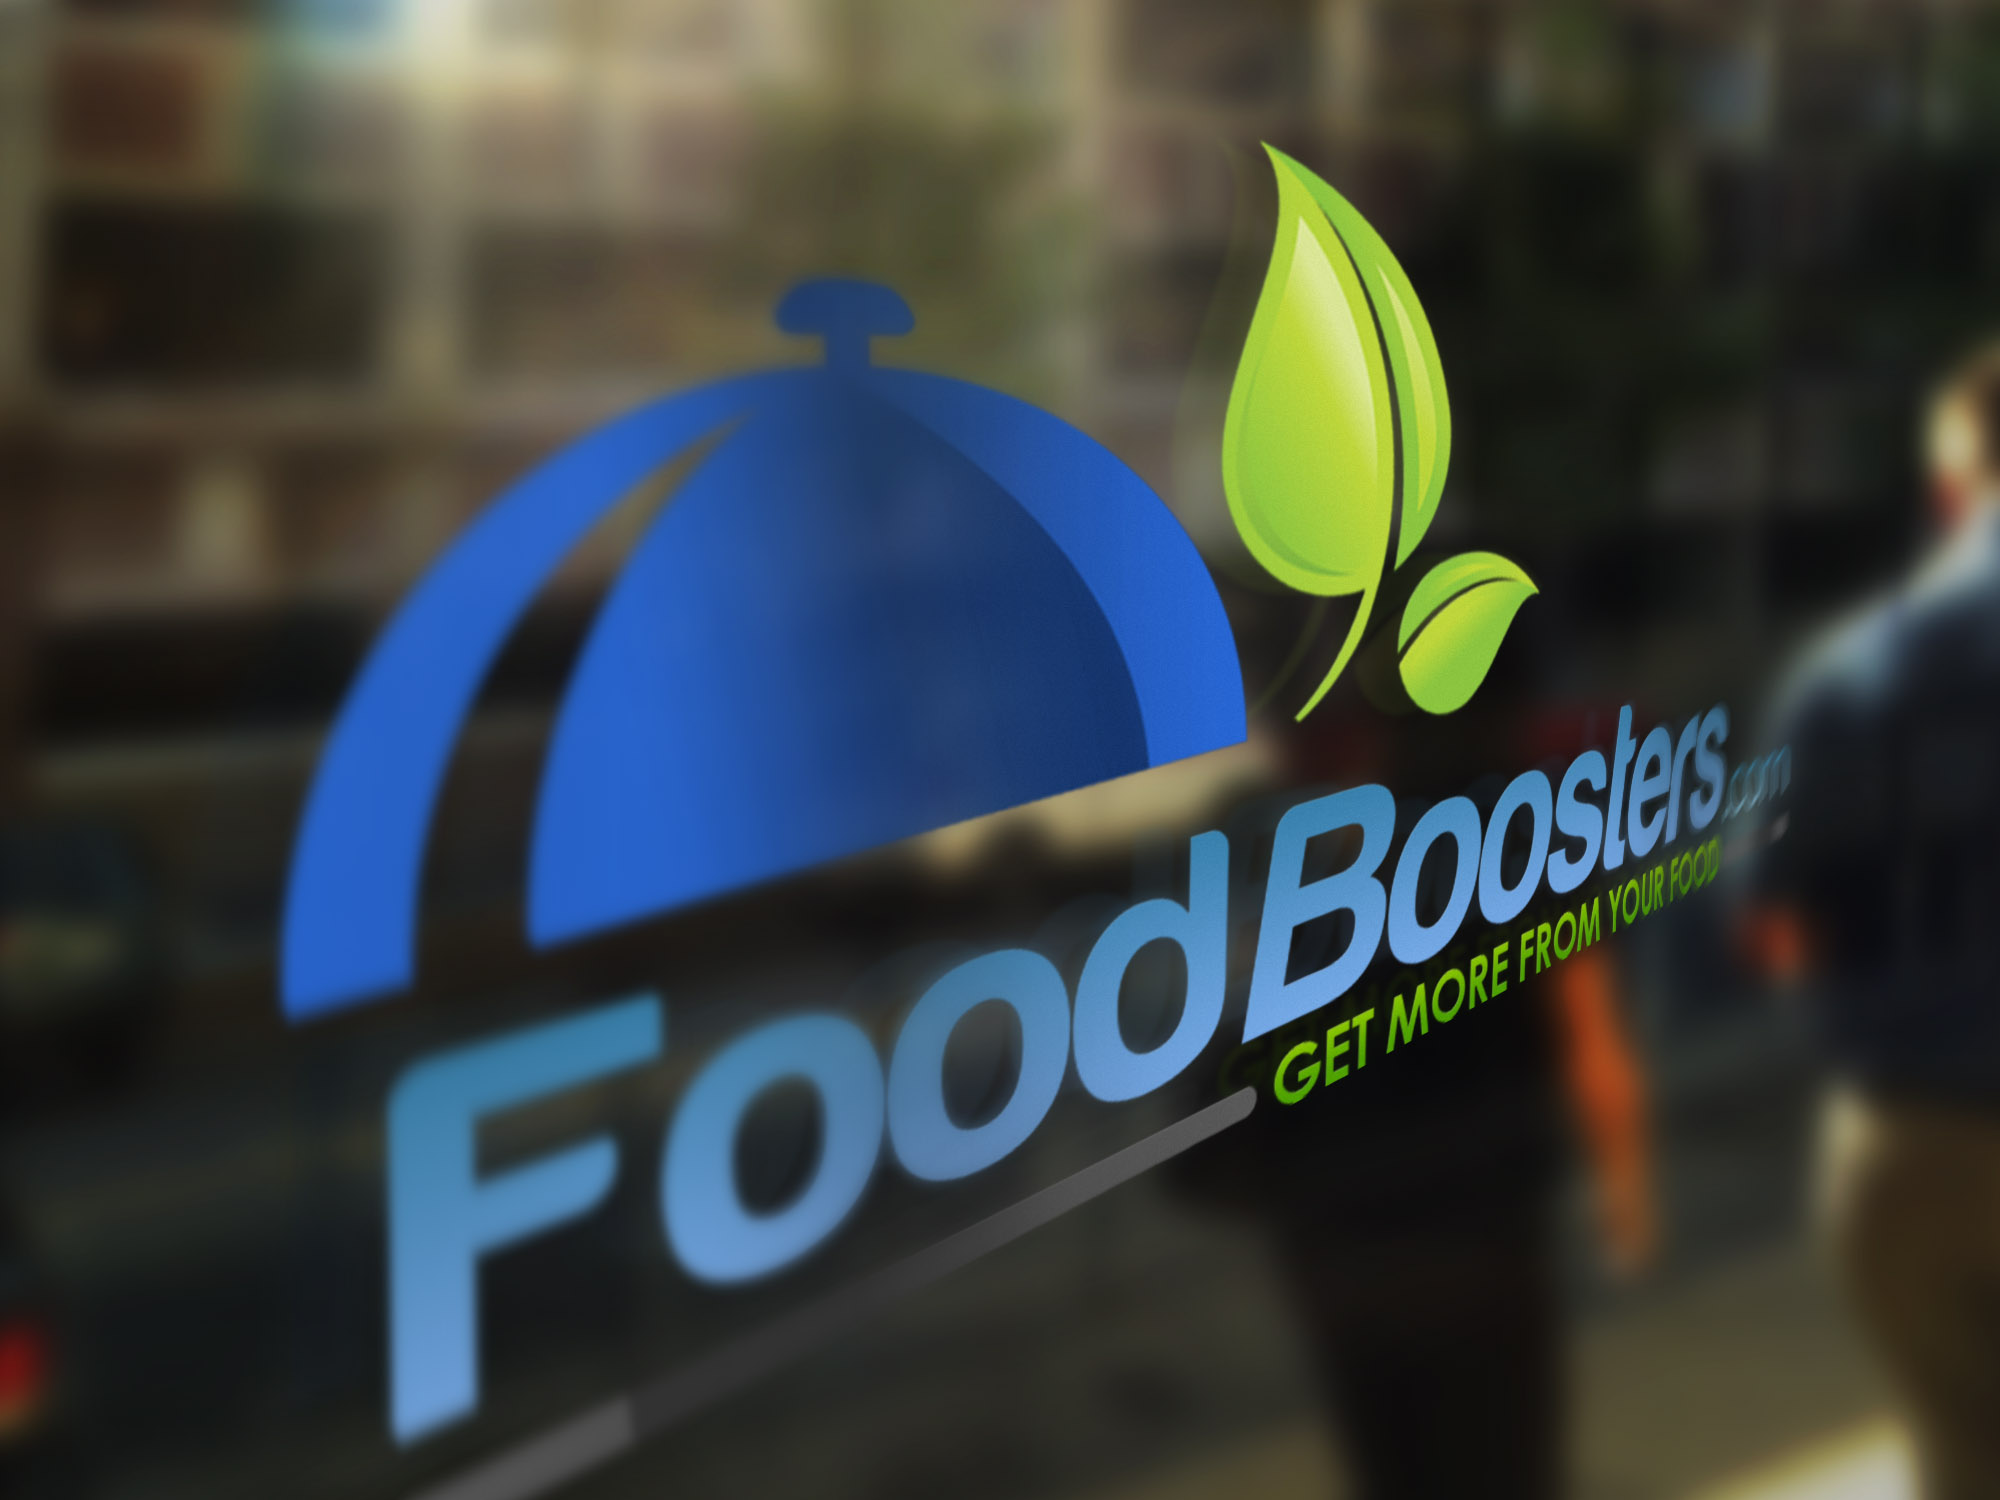 FoodBoosters Doorglass